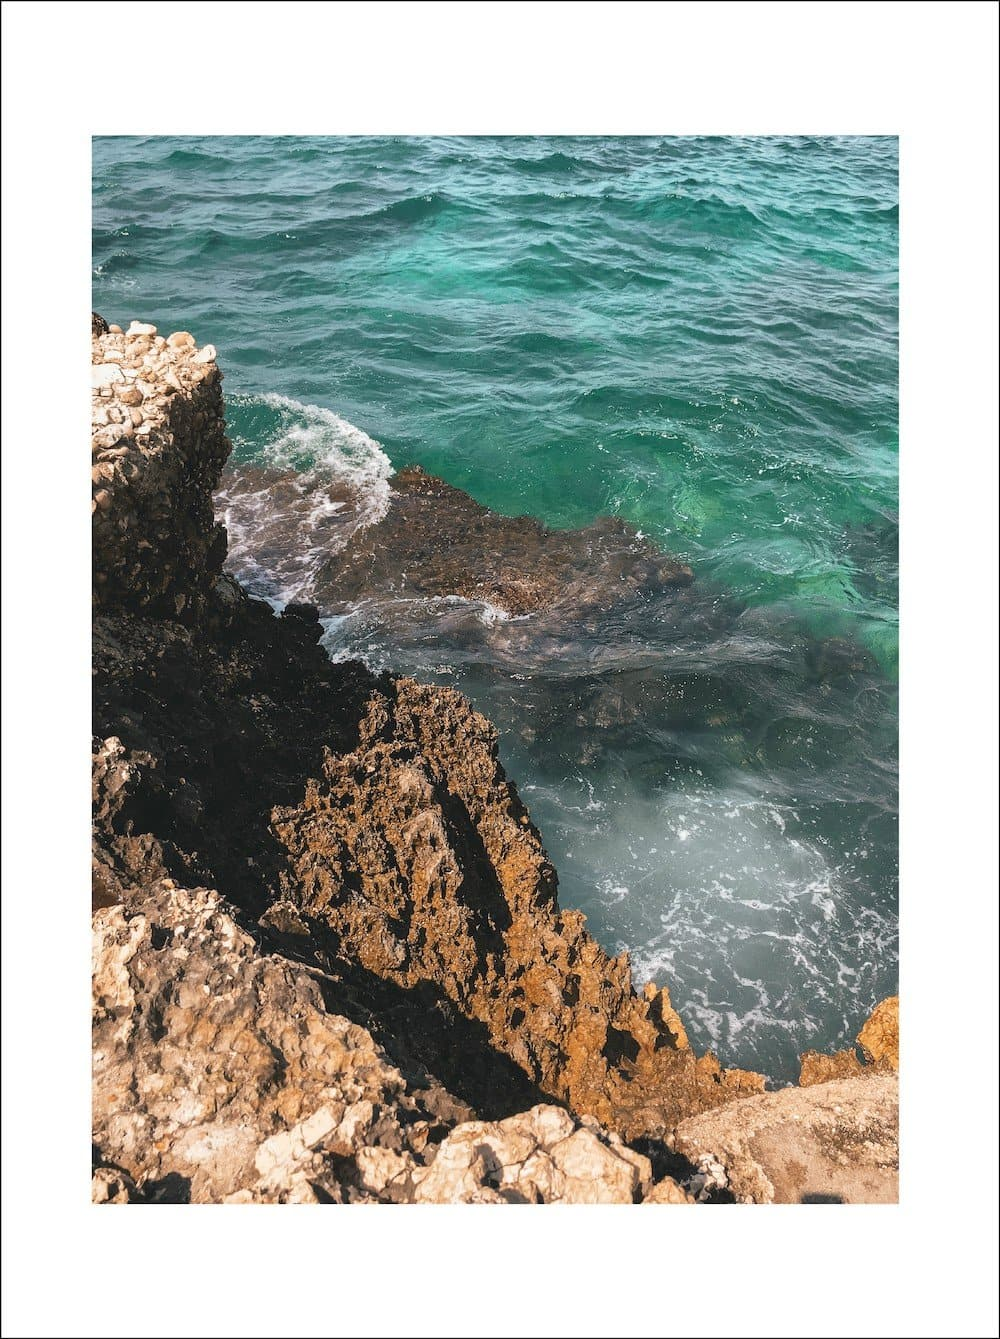 Adriatic Sea - Lively Bay - Posters - Livelybay.com